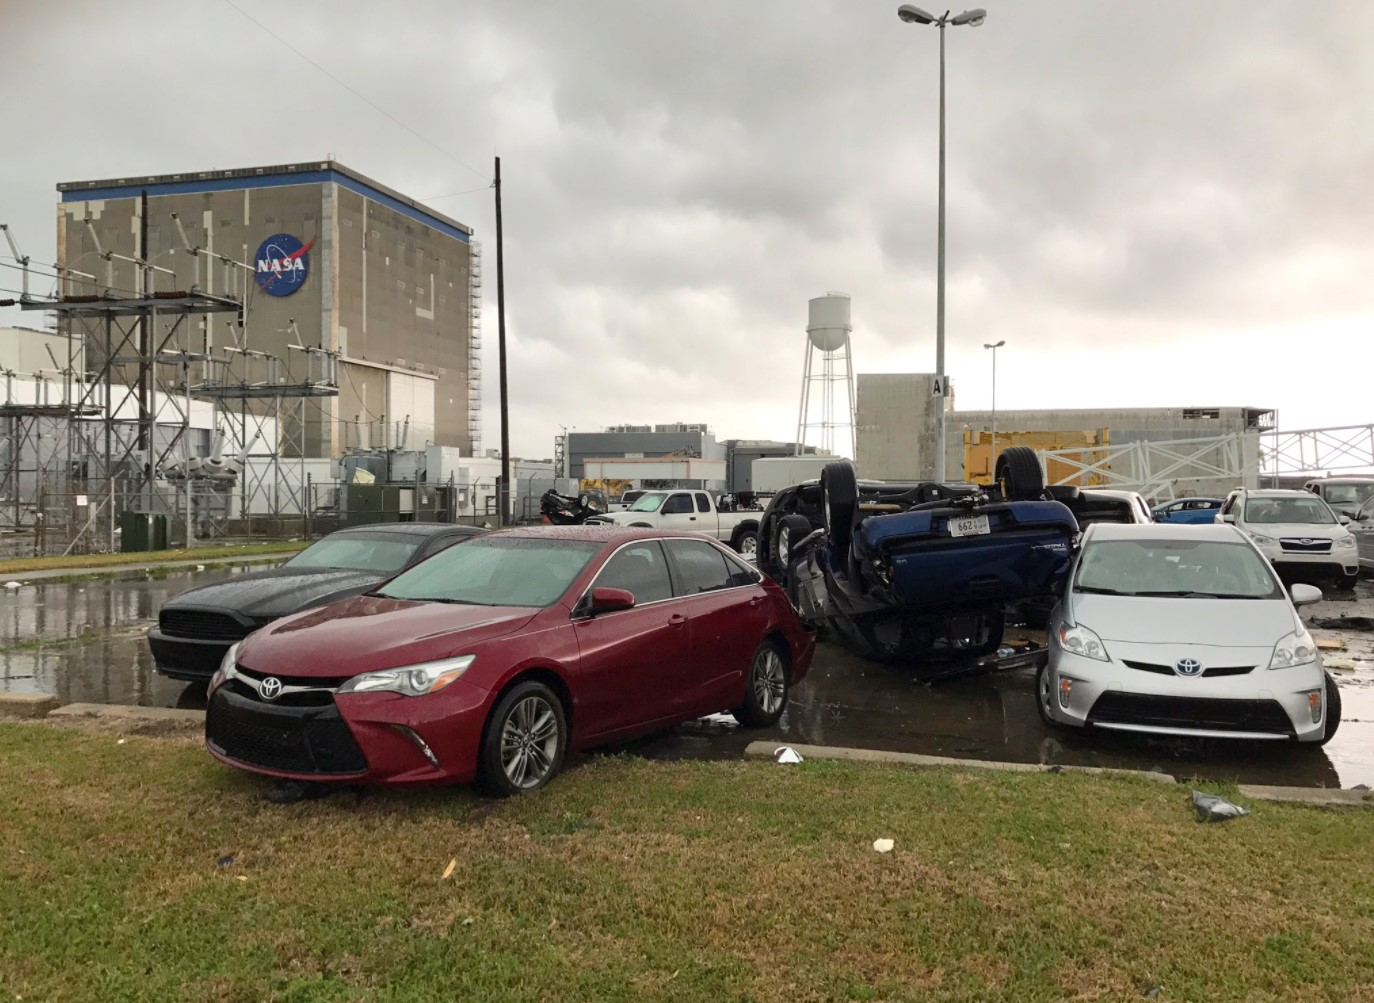 In Photos: Tornado Damage at NASA's Michoud Assembly Facility